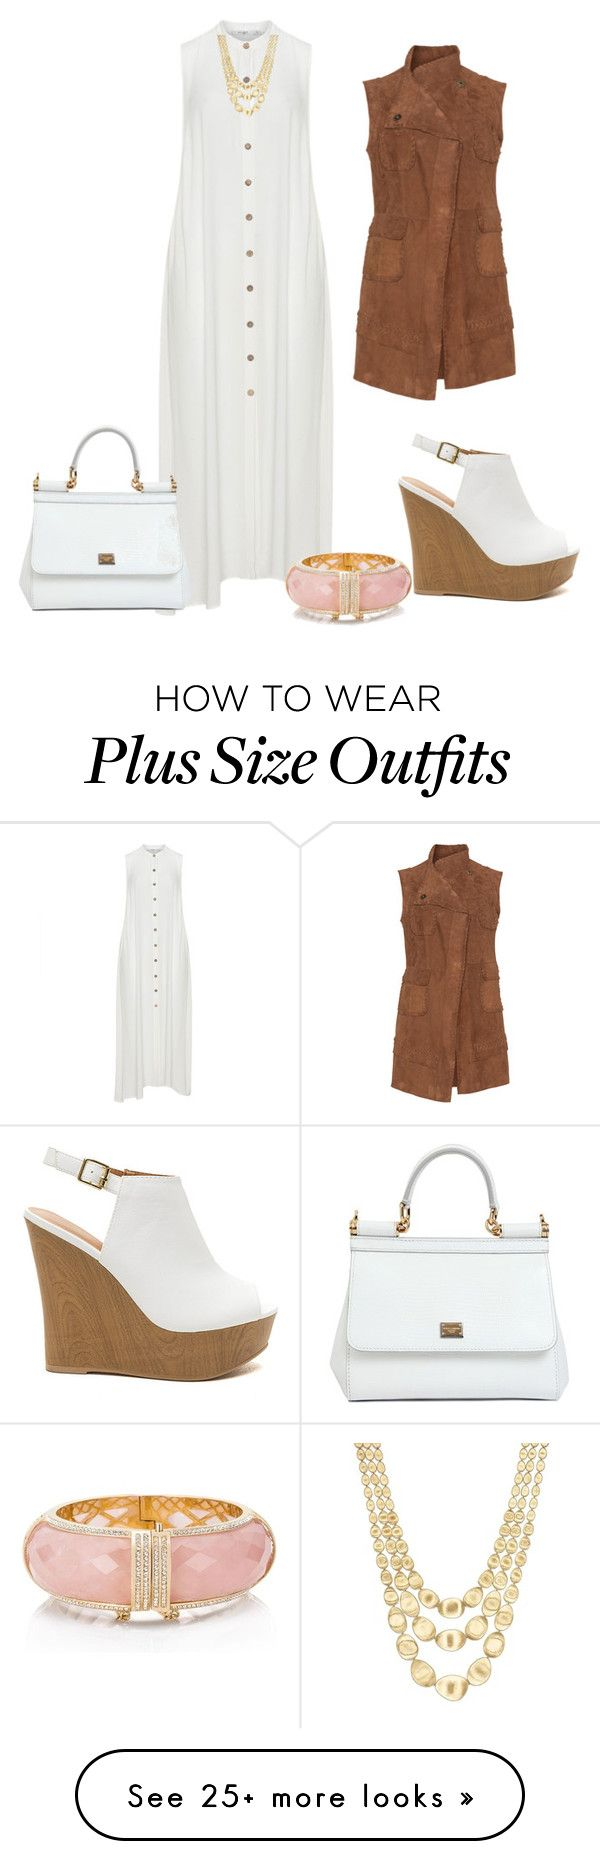 """Plus size outfit"" by sharon-chetty on Polyvore featuring Mat, Marco Bicego, Kate Spade and Dolce&Gabbana"